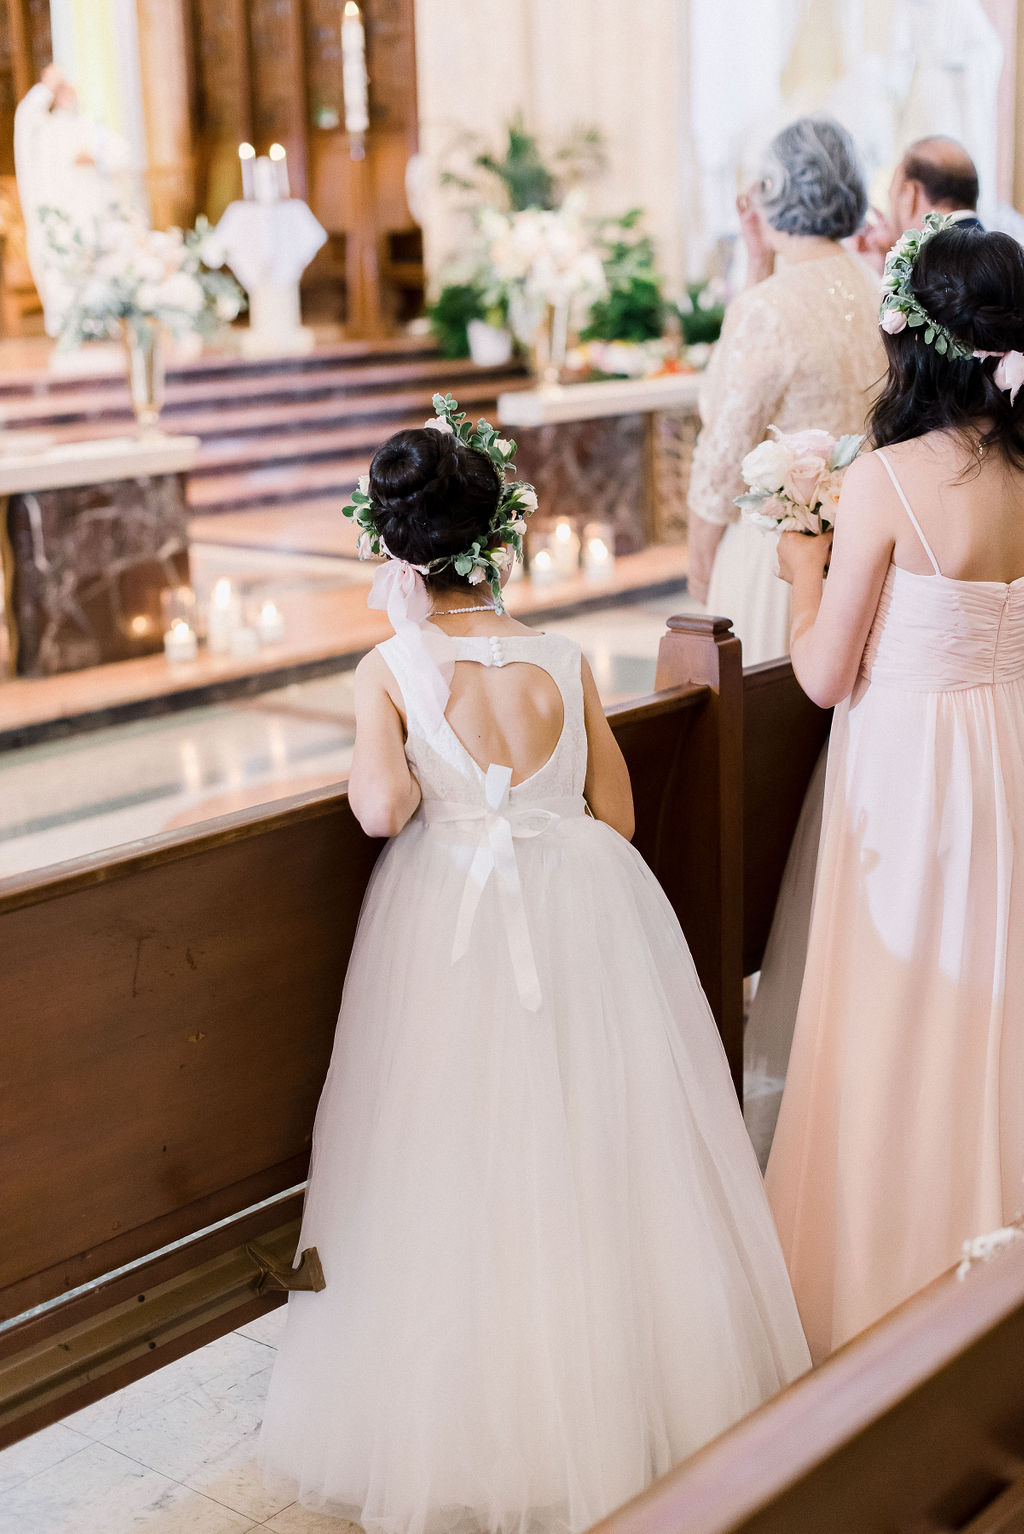 flower girl wearing an open back dress looking at the bride from the church pew